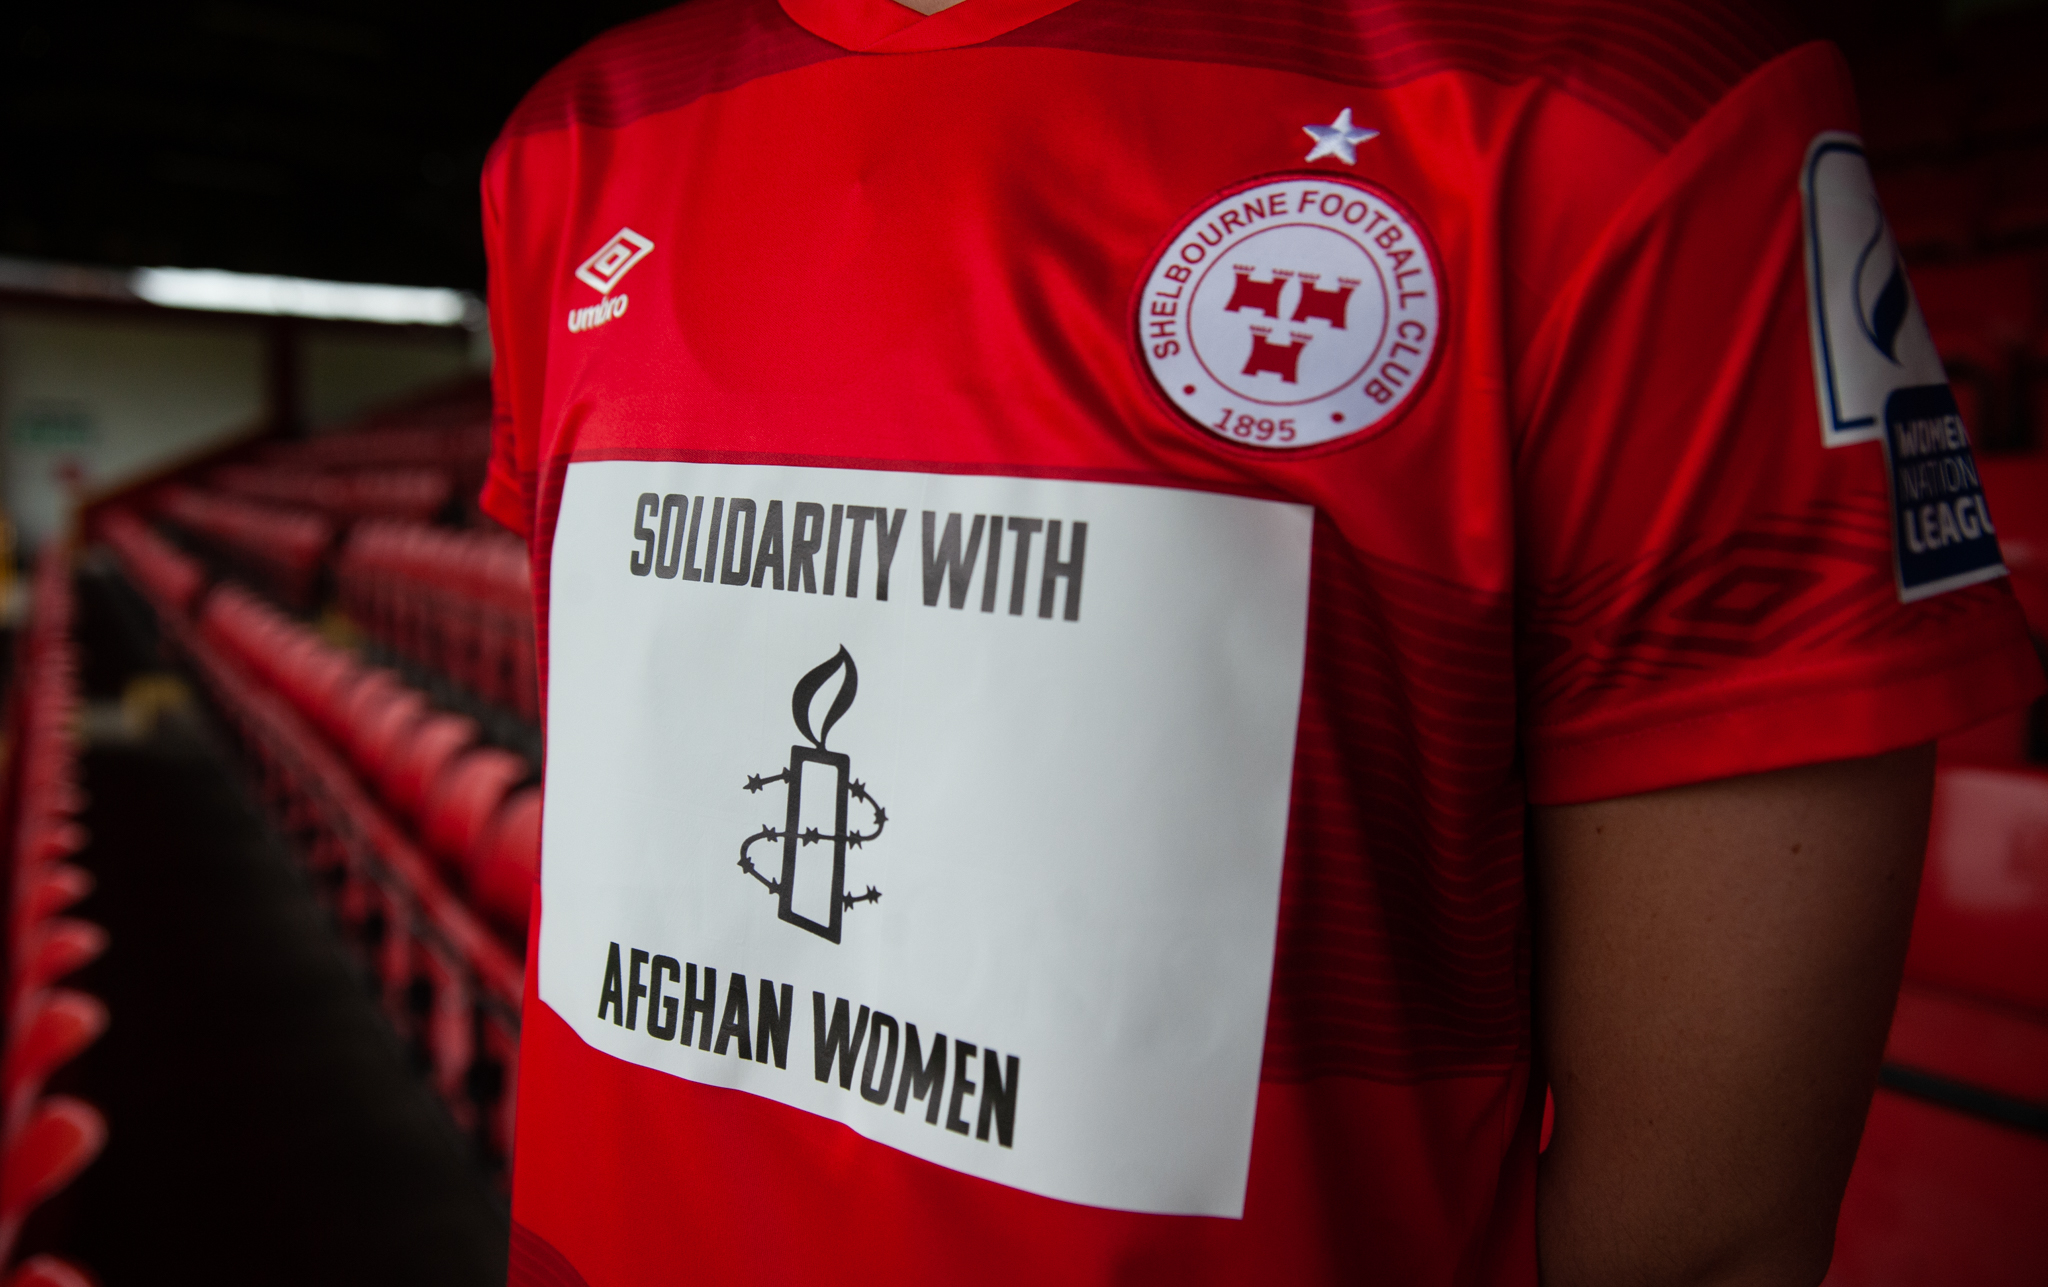 Shelbourne FC and Amnesty team up for Afghan women